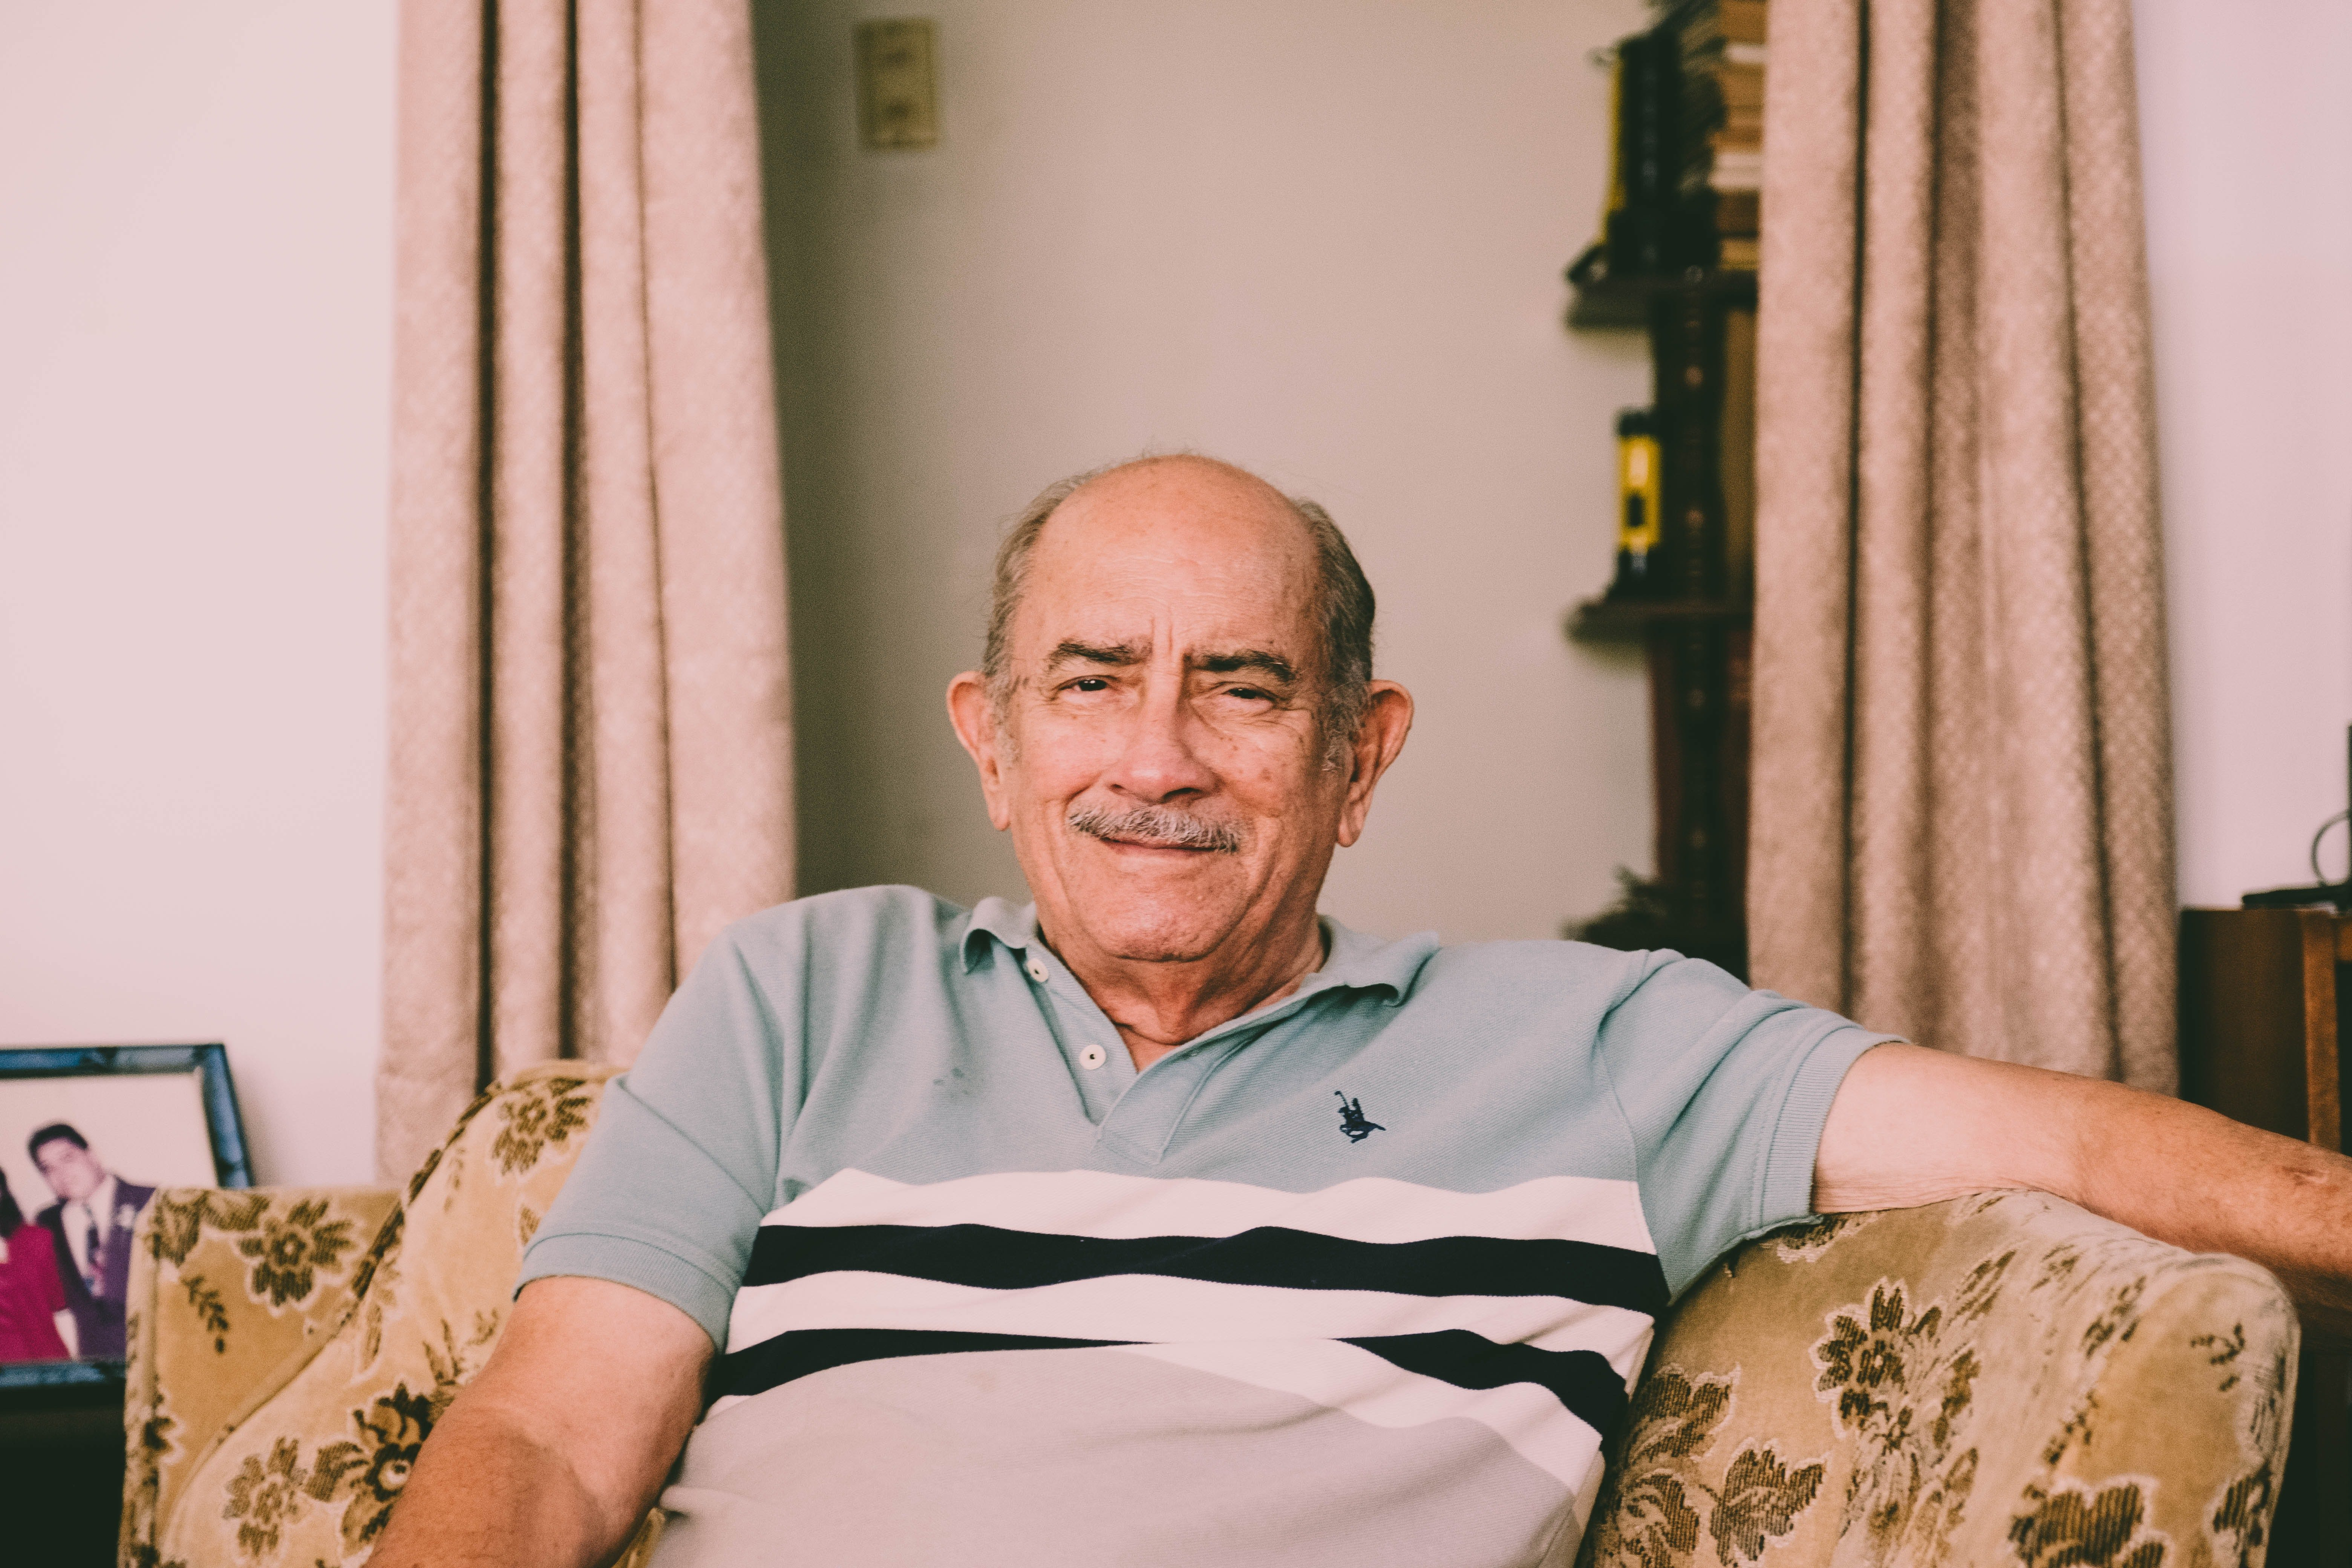 An elderly man sitting on a couch.   Photo: Pexels